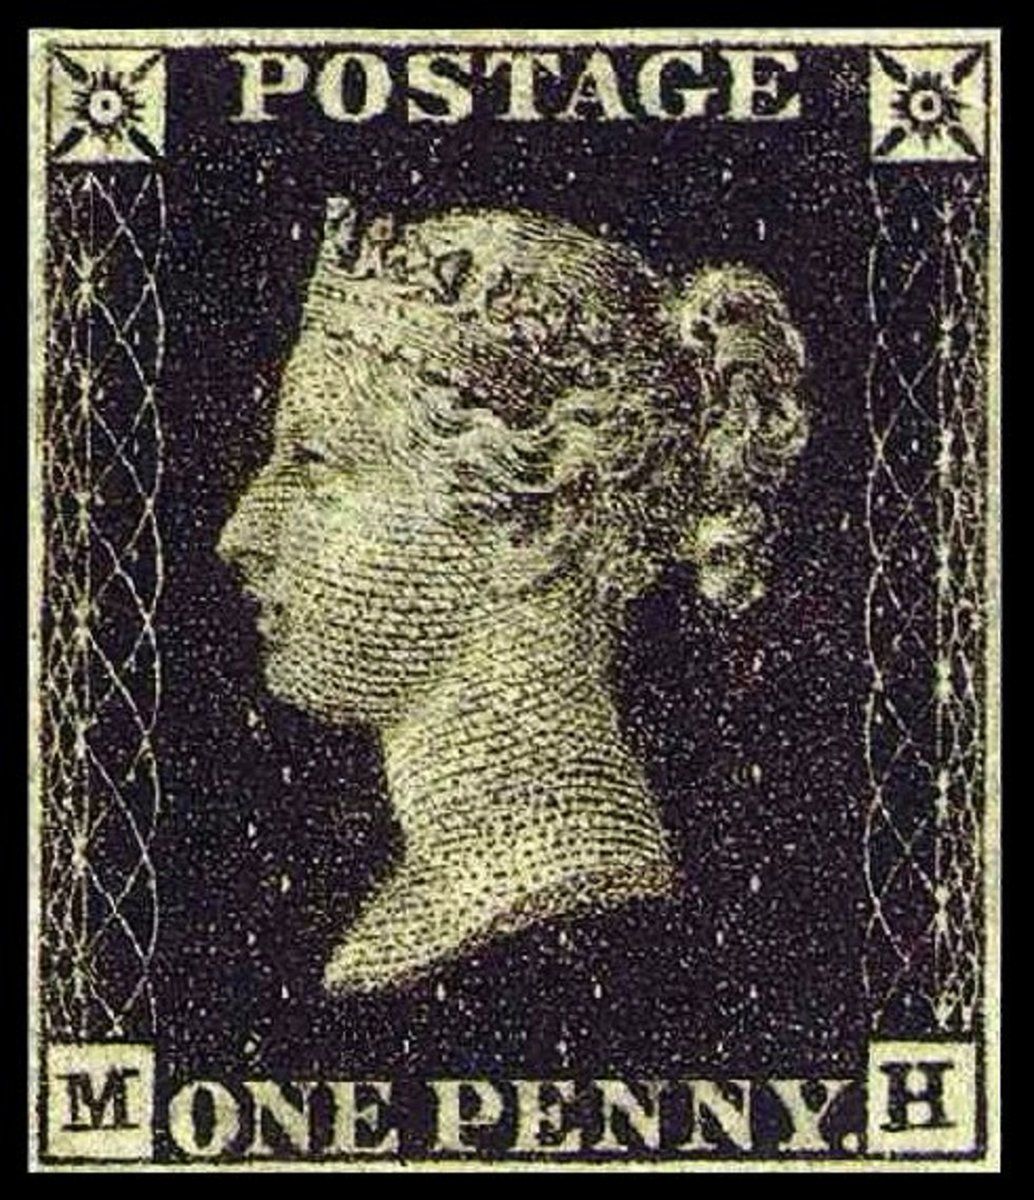 Penny Black, the World's First Postage Stamp, 1840. Courtesy Wiki Commons